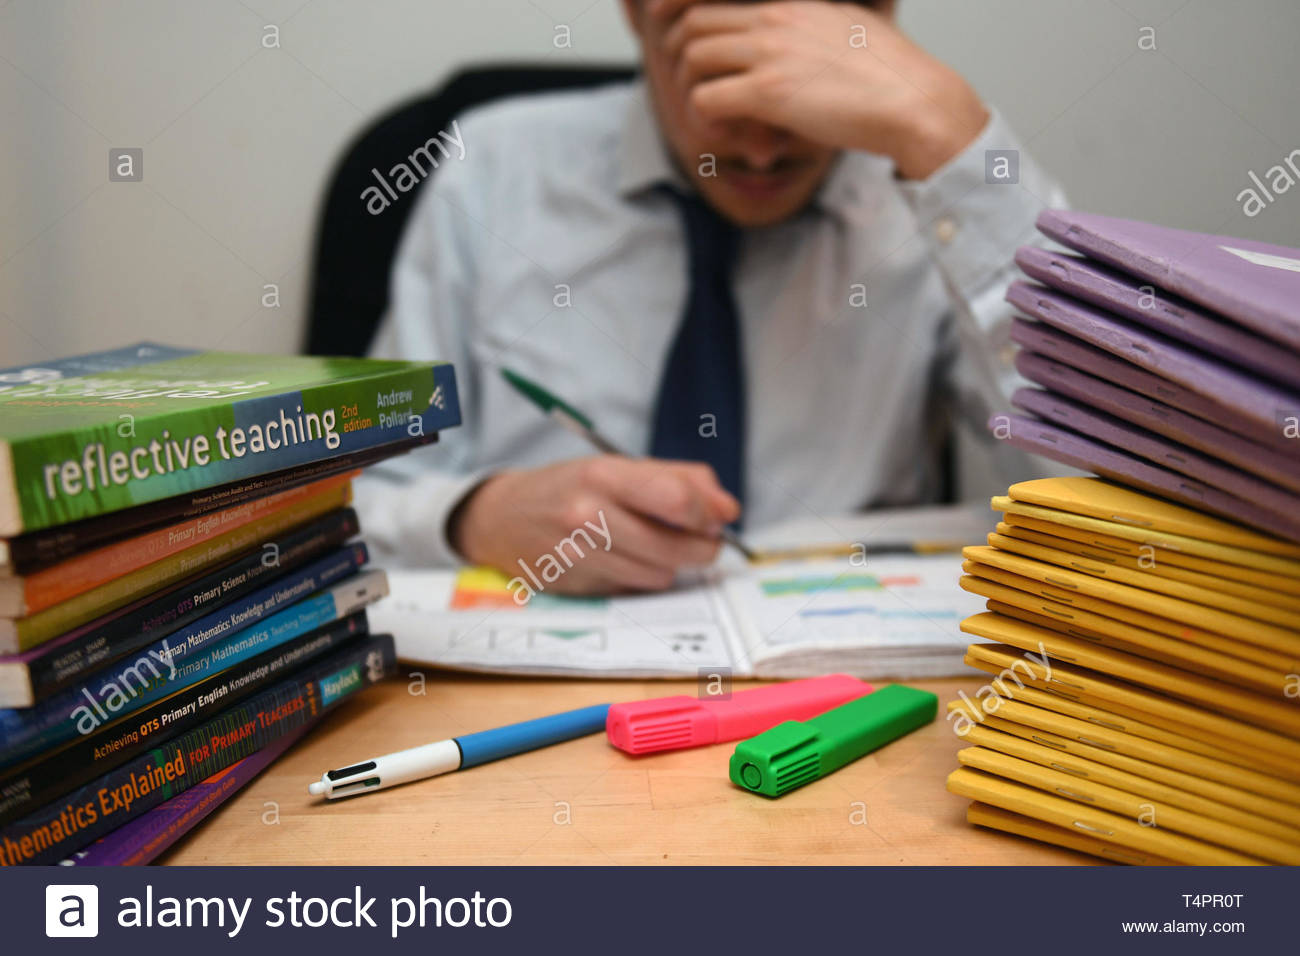 File photo dated 05/03/17 of a teacher at work. Teachers are considering self-harming - and have even quit the profession because of workplace bullying, new research suggests. - Stock Image